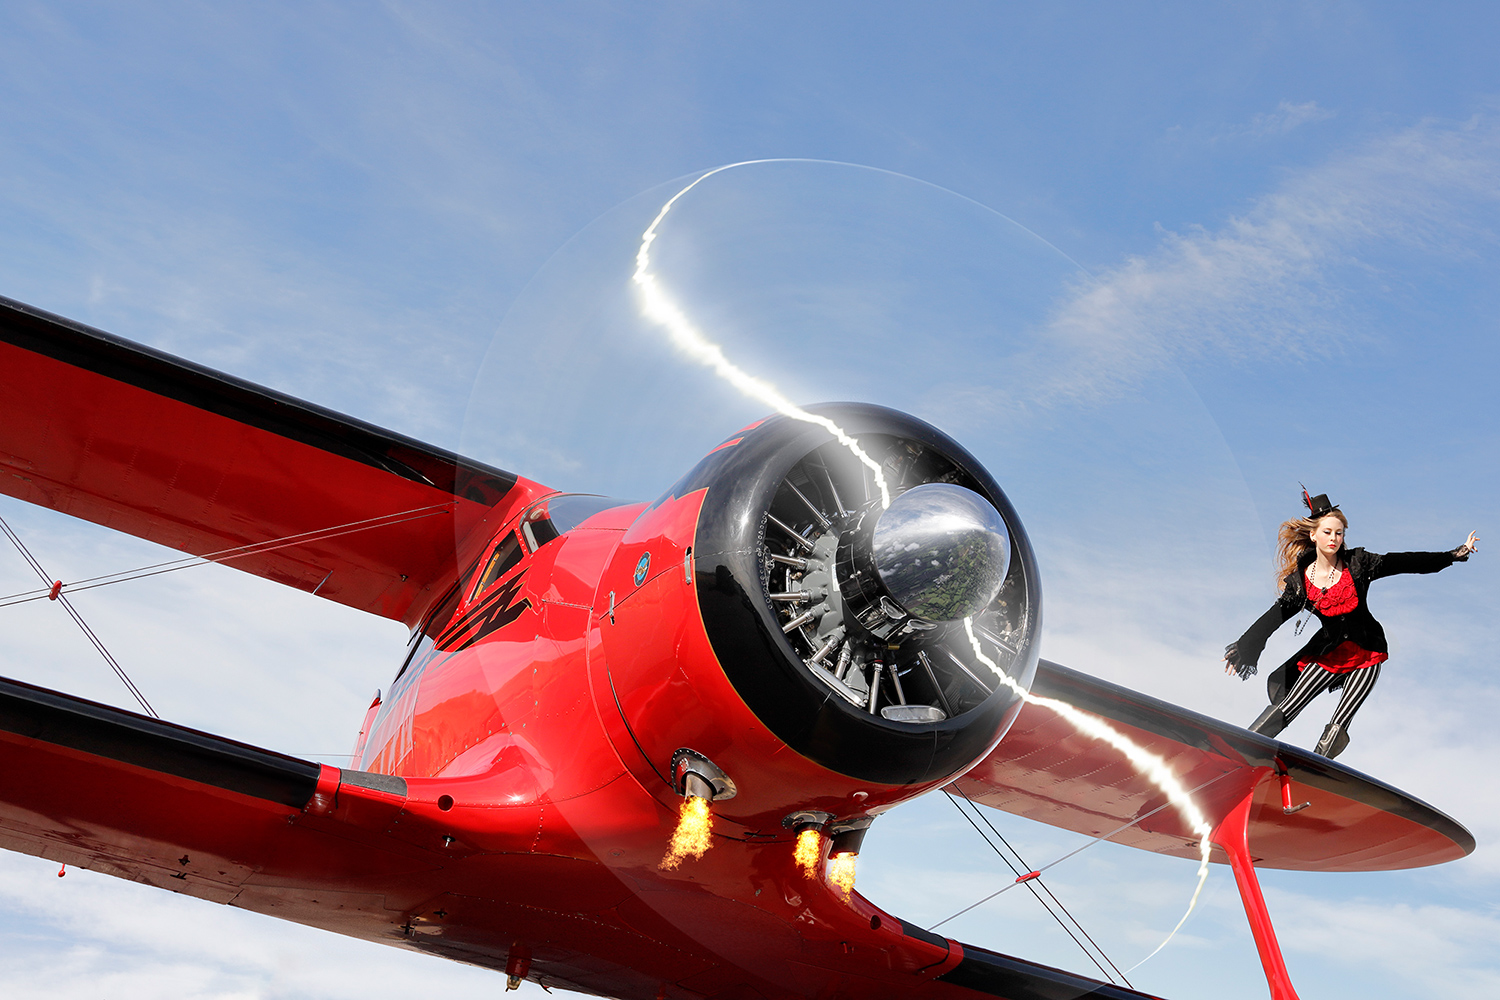 Canon Explorers of Light Series Q&A with photographer Bruce Dorn – Image of a woman on the edge of a red plane wing